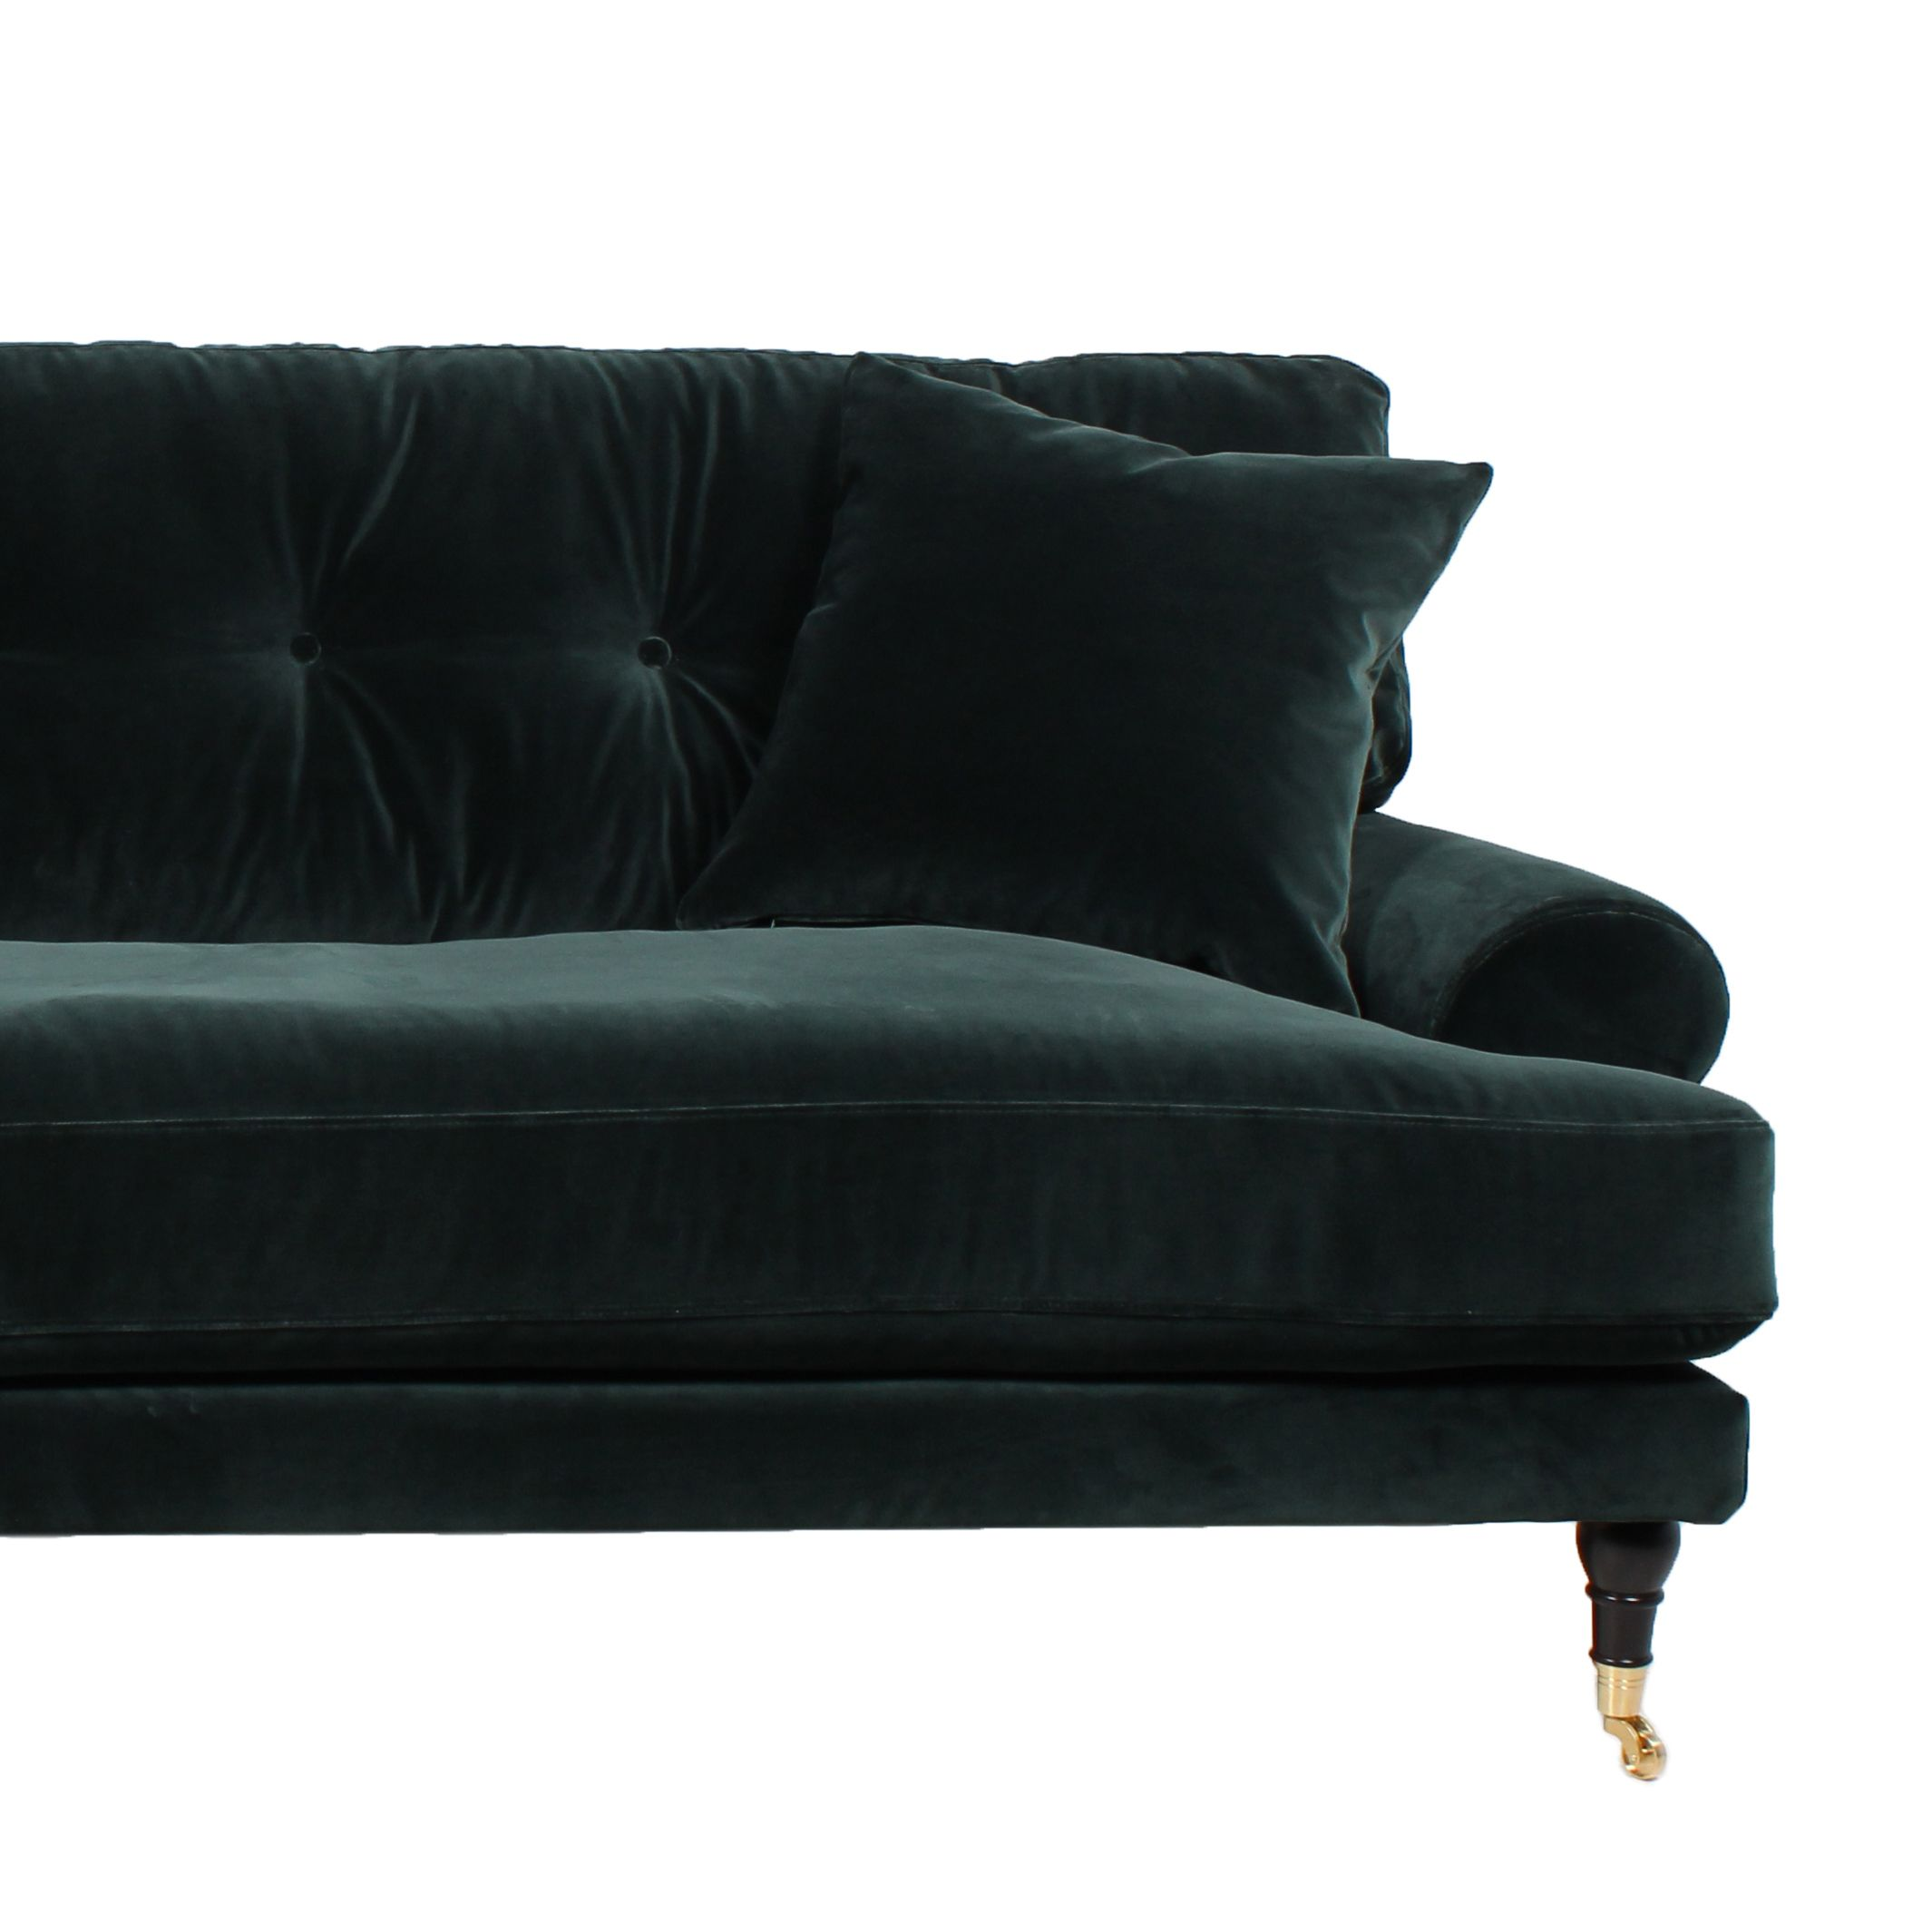 incredible your velvet home marian green world design with emerald living market to loveseat regard room